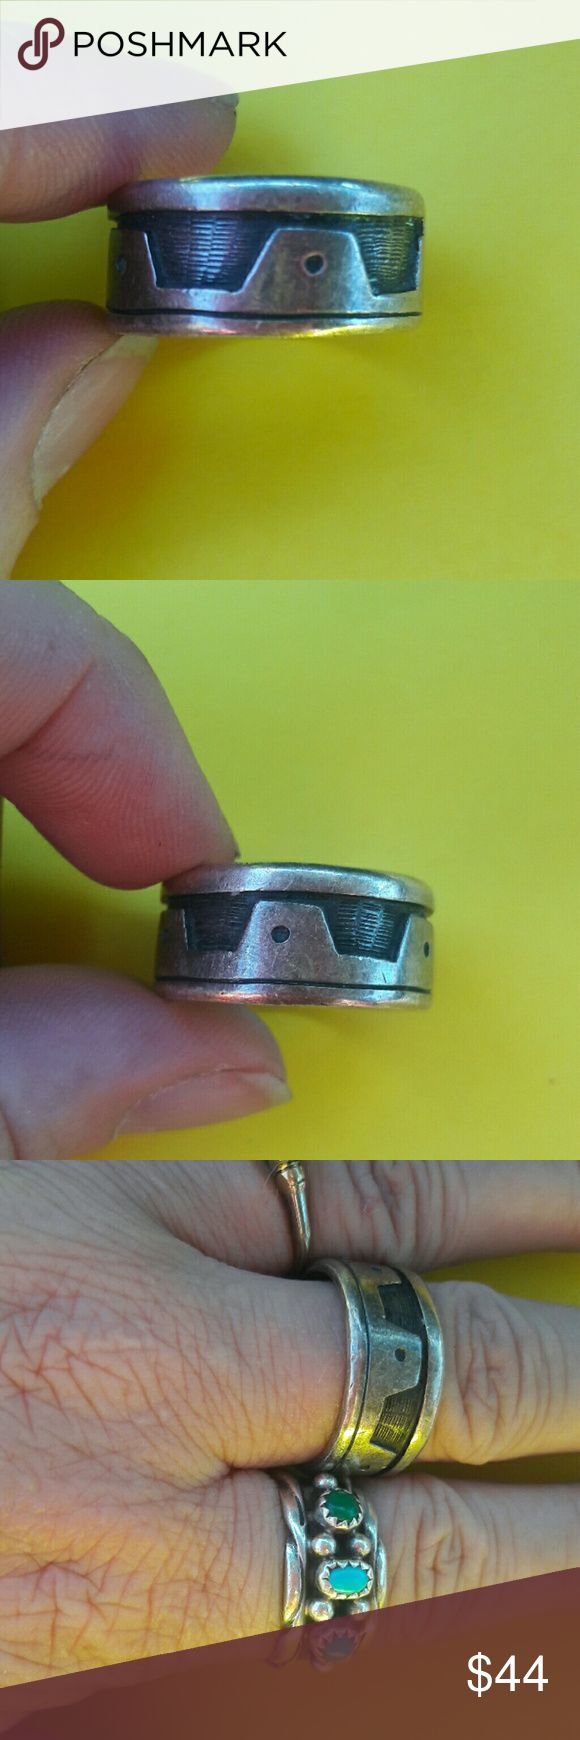 sterling silver 9.5 ring 925 Southwestern unisex Quality craftsmanship, simple design. Great definition. Marked inside sterling, and has makers name. Fits about a 9.5. Light scratches, otherwise perfect! Please ask any questions. Thank you! Vintage Accessories Jewelry